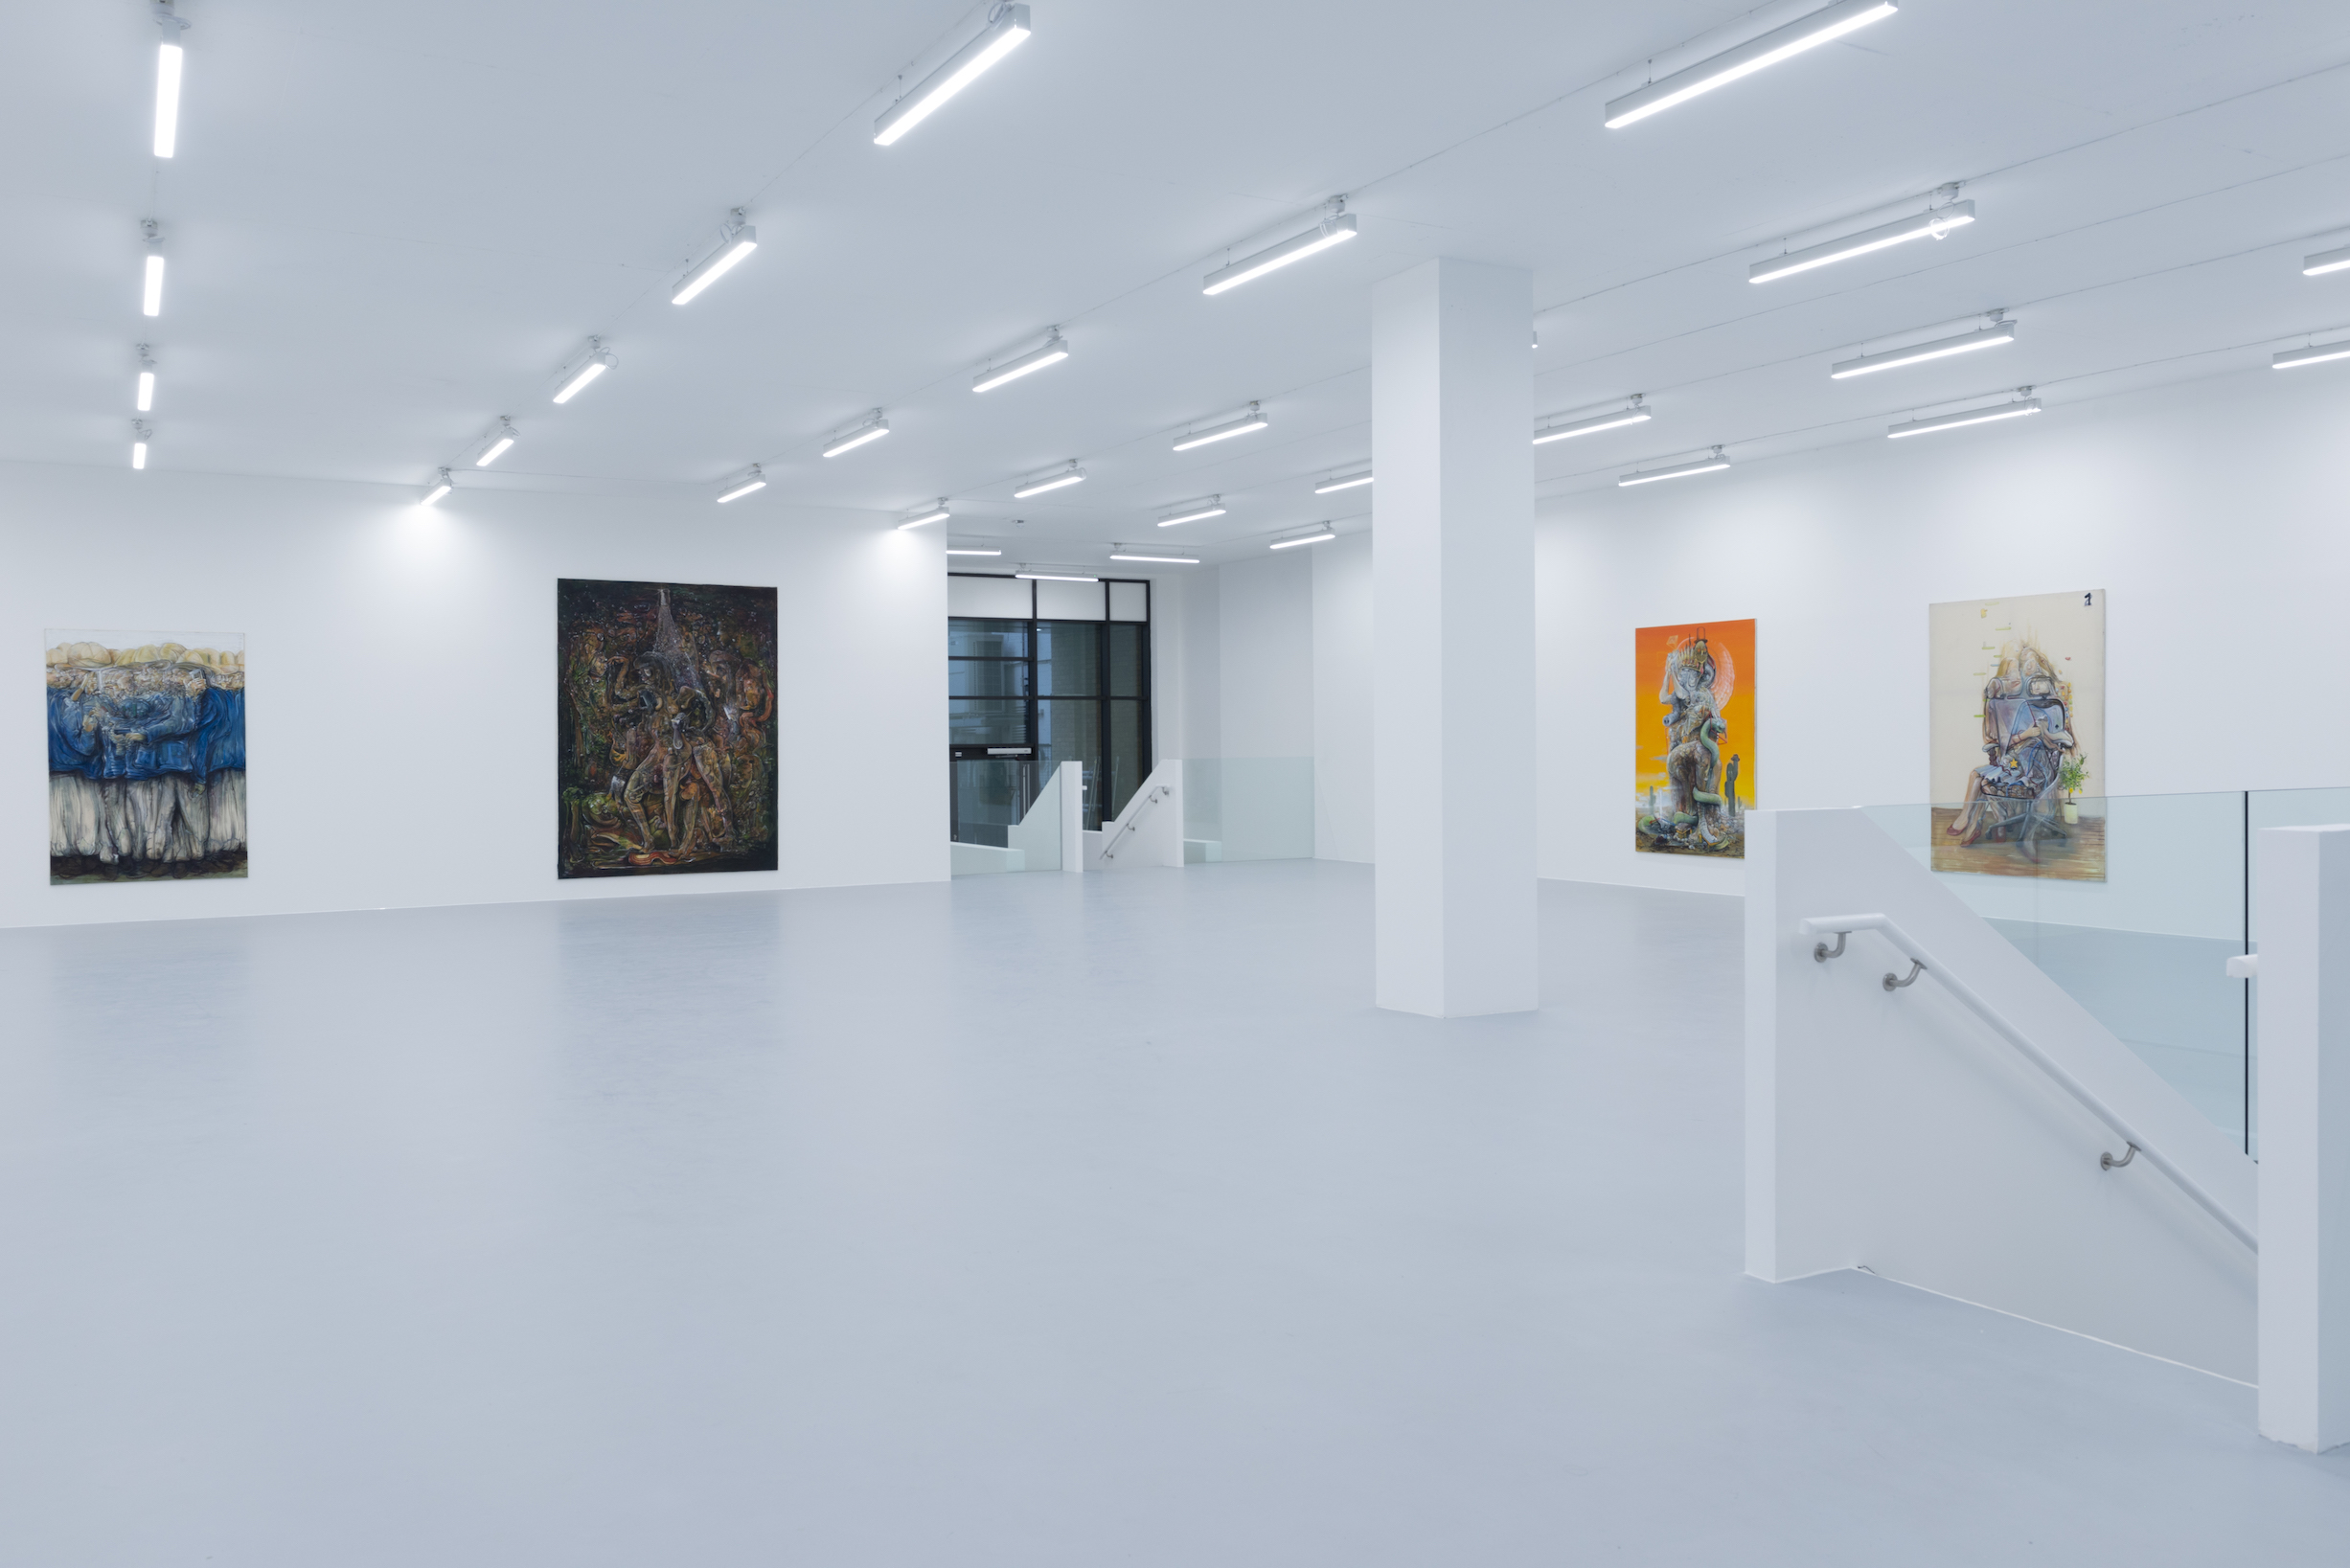 Installation view 8, Pascal Sender at Saatchi Yates, 2020, Courtesy of the artist and Saatchi Yates